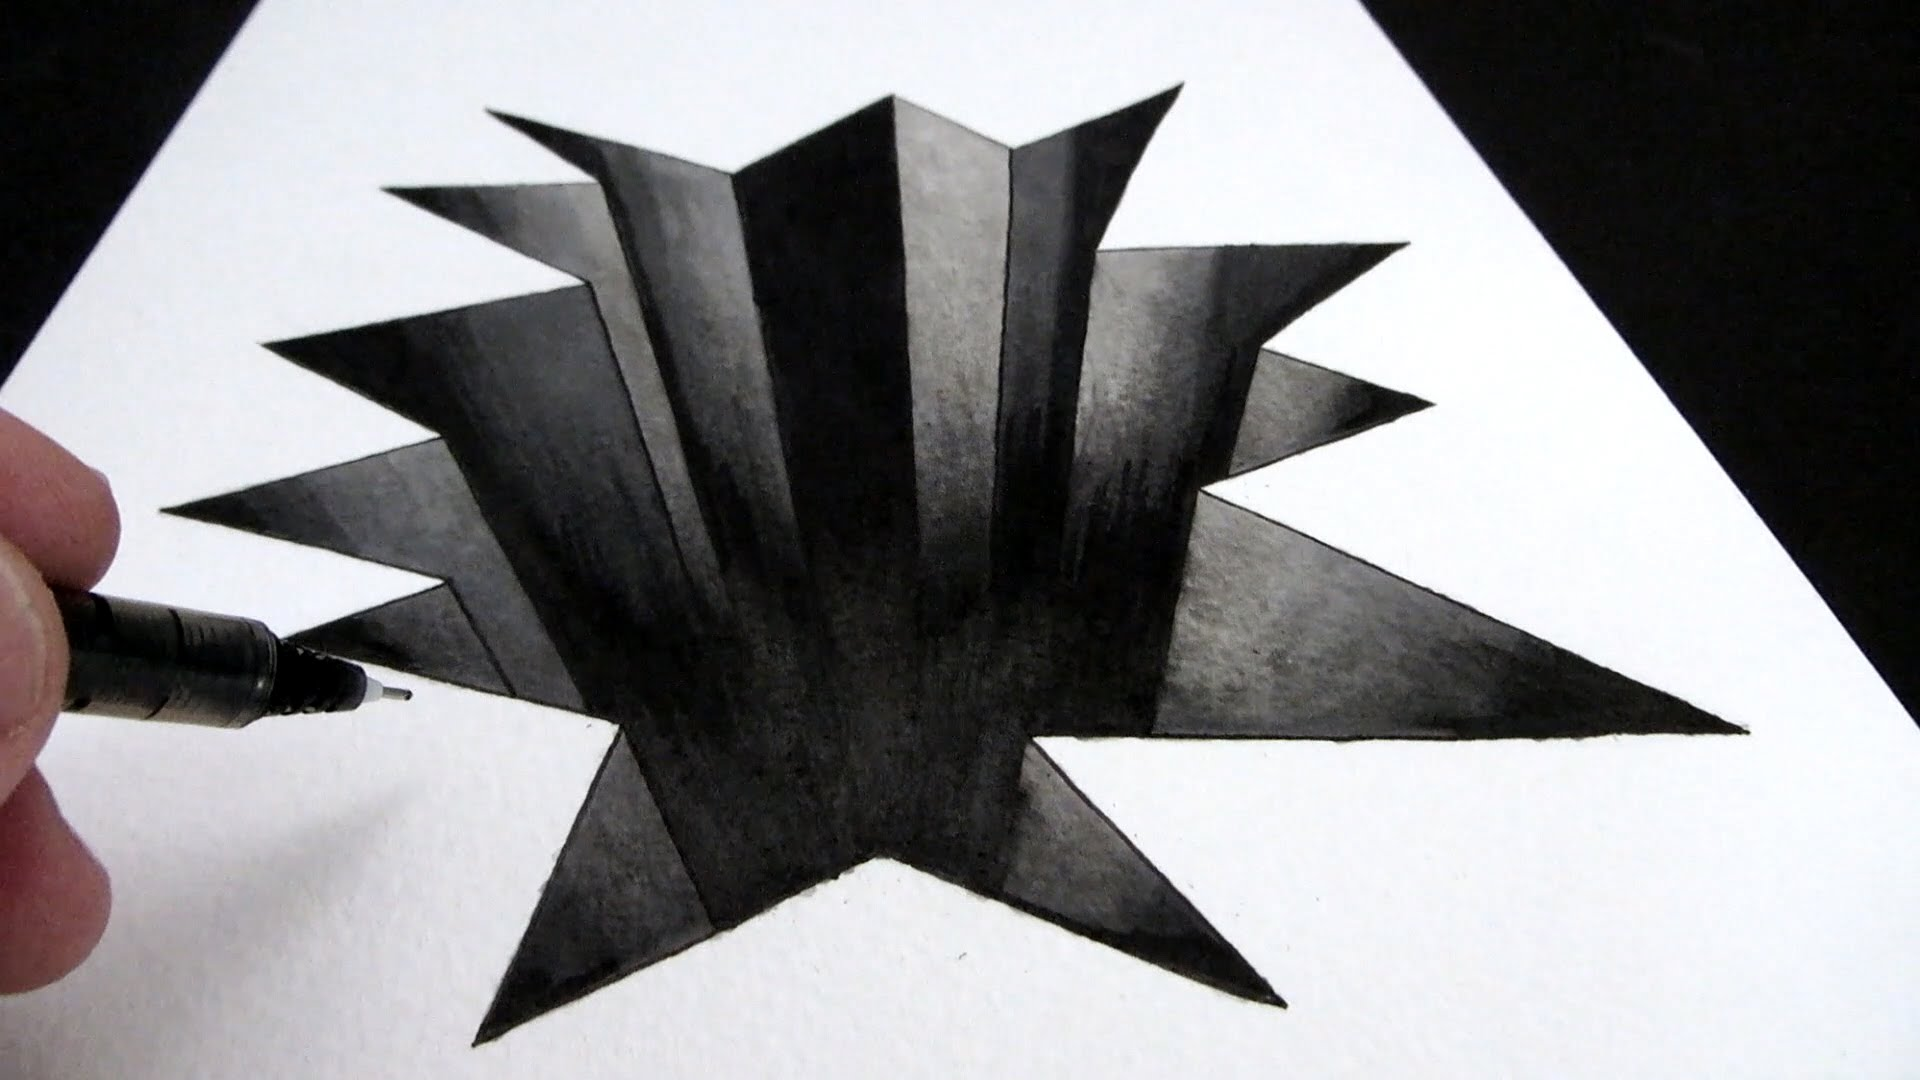 Drawn optical illusion hole Art YouTube How to in